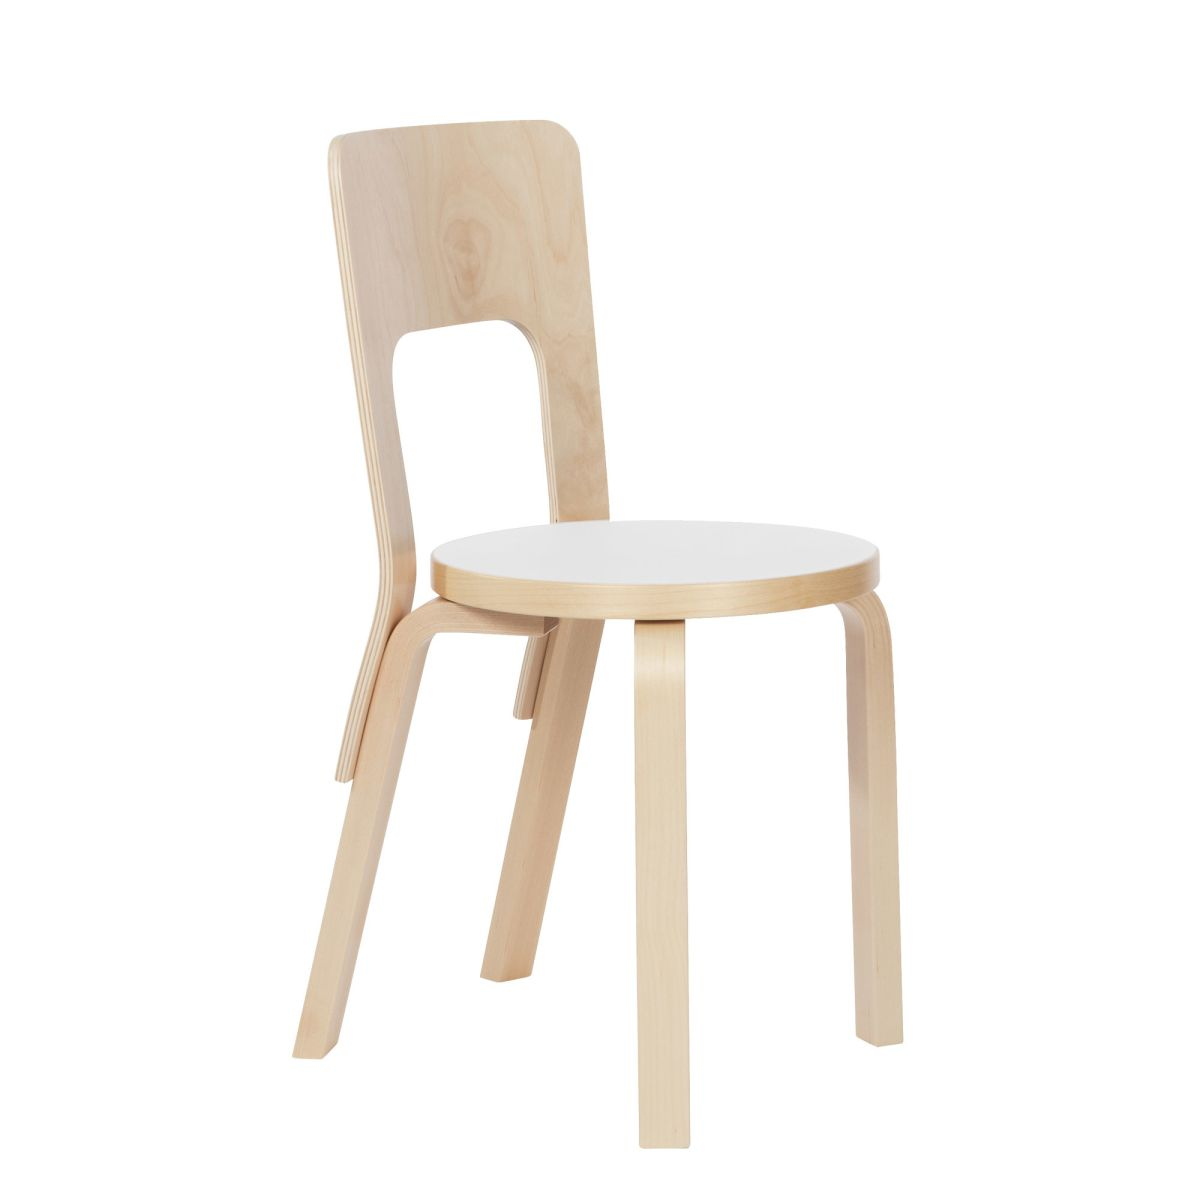 Chair 66 white laminate_WEB